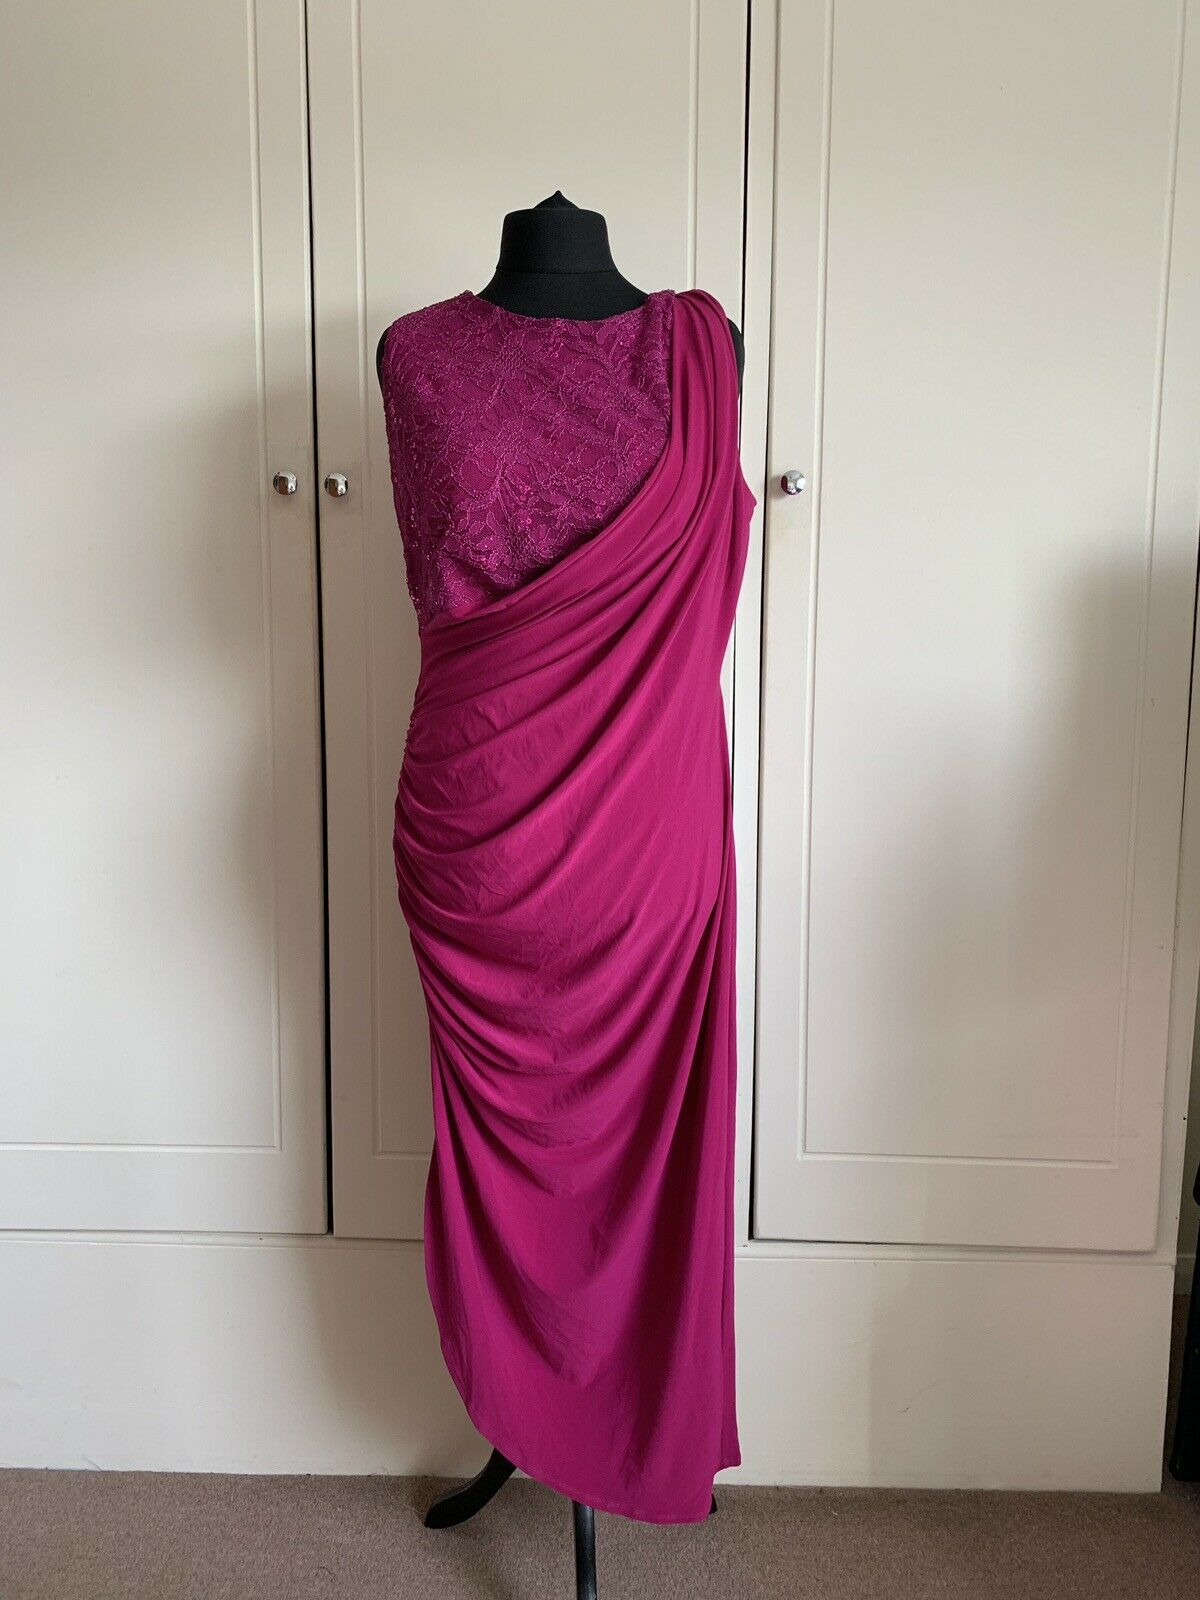 G644 Body flirt pink evening dress, new with tags, size L